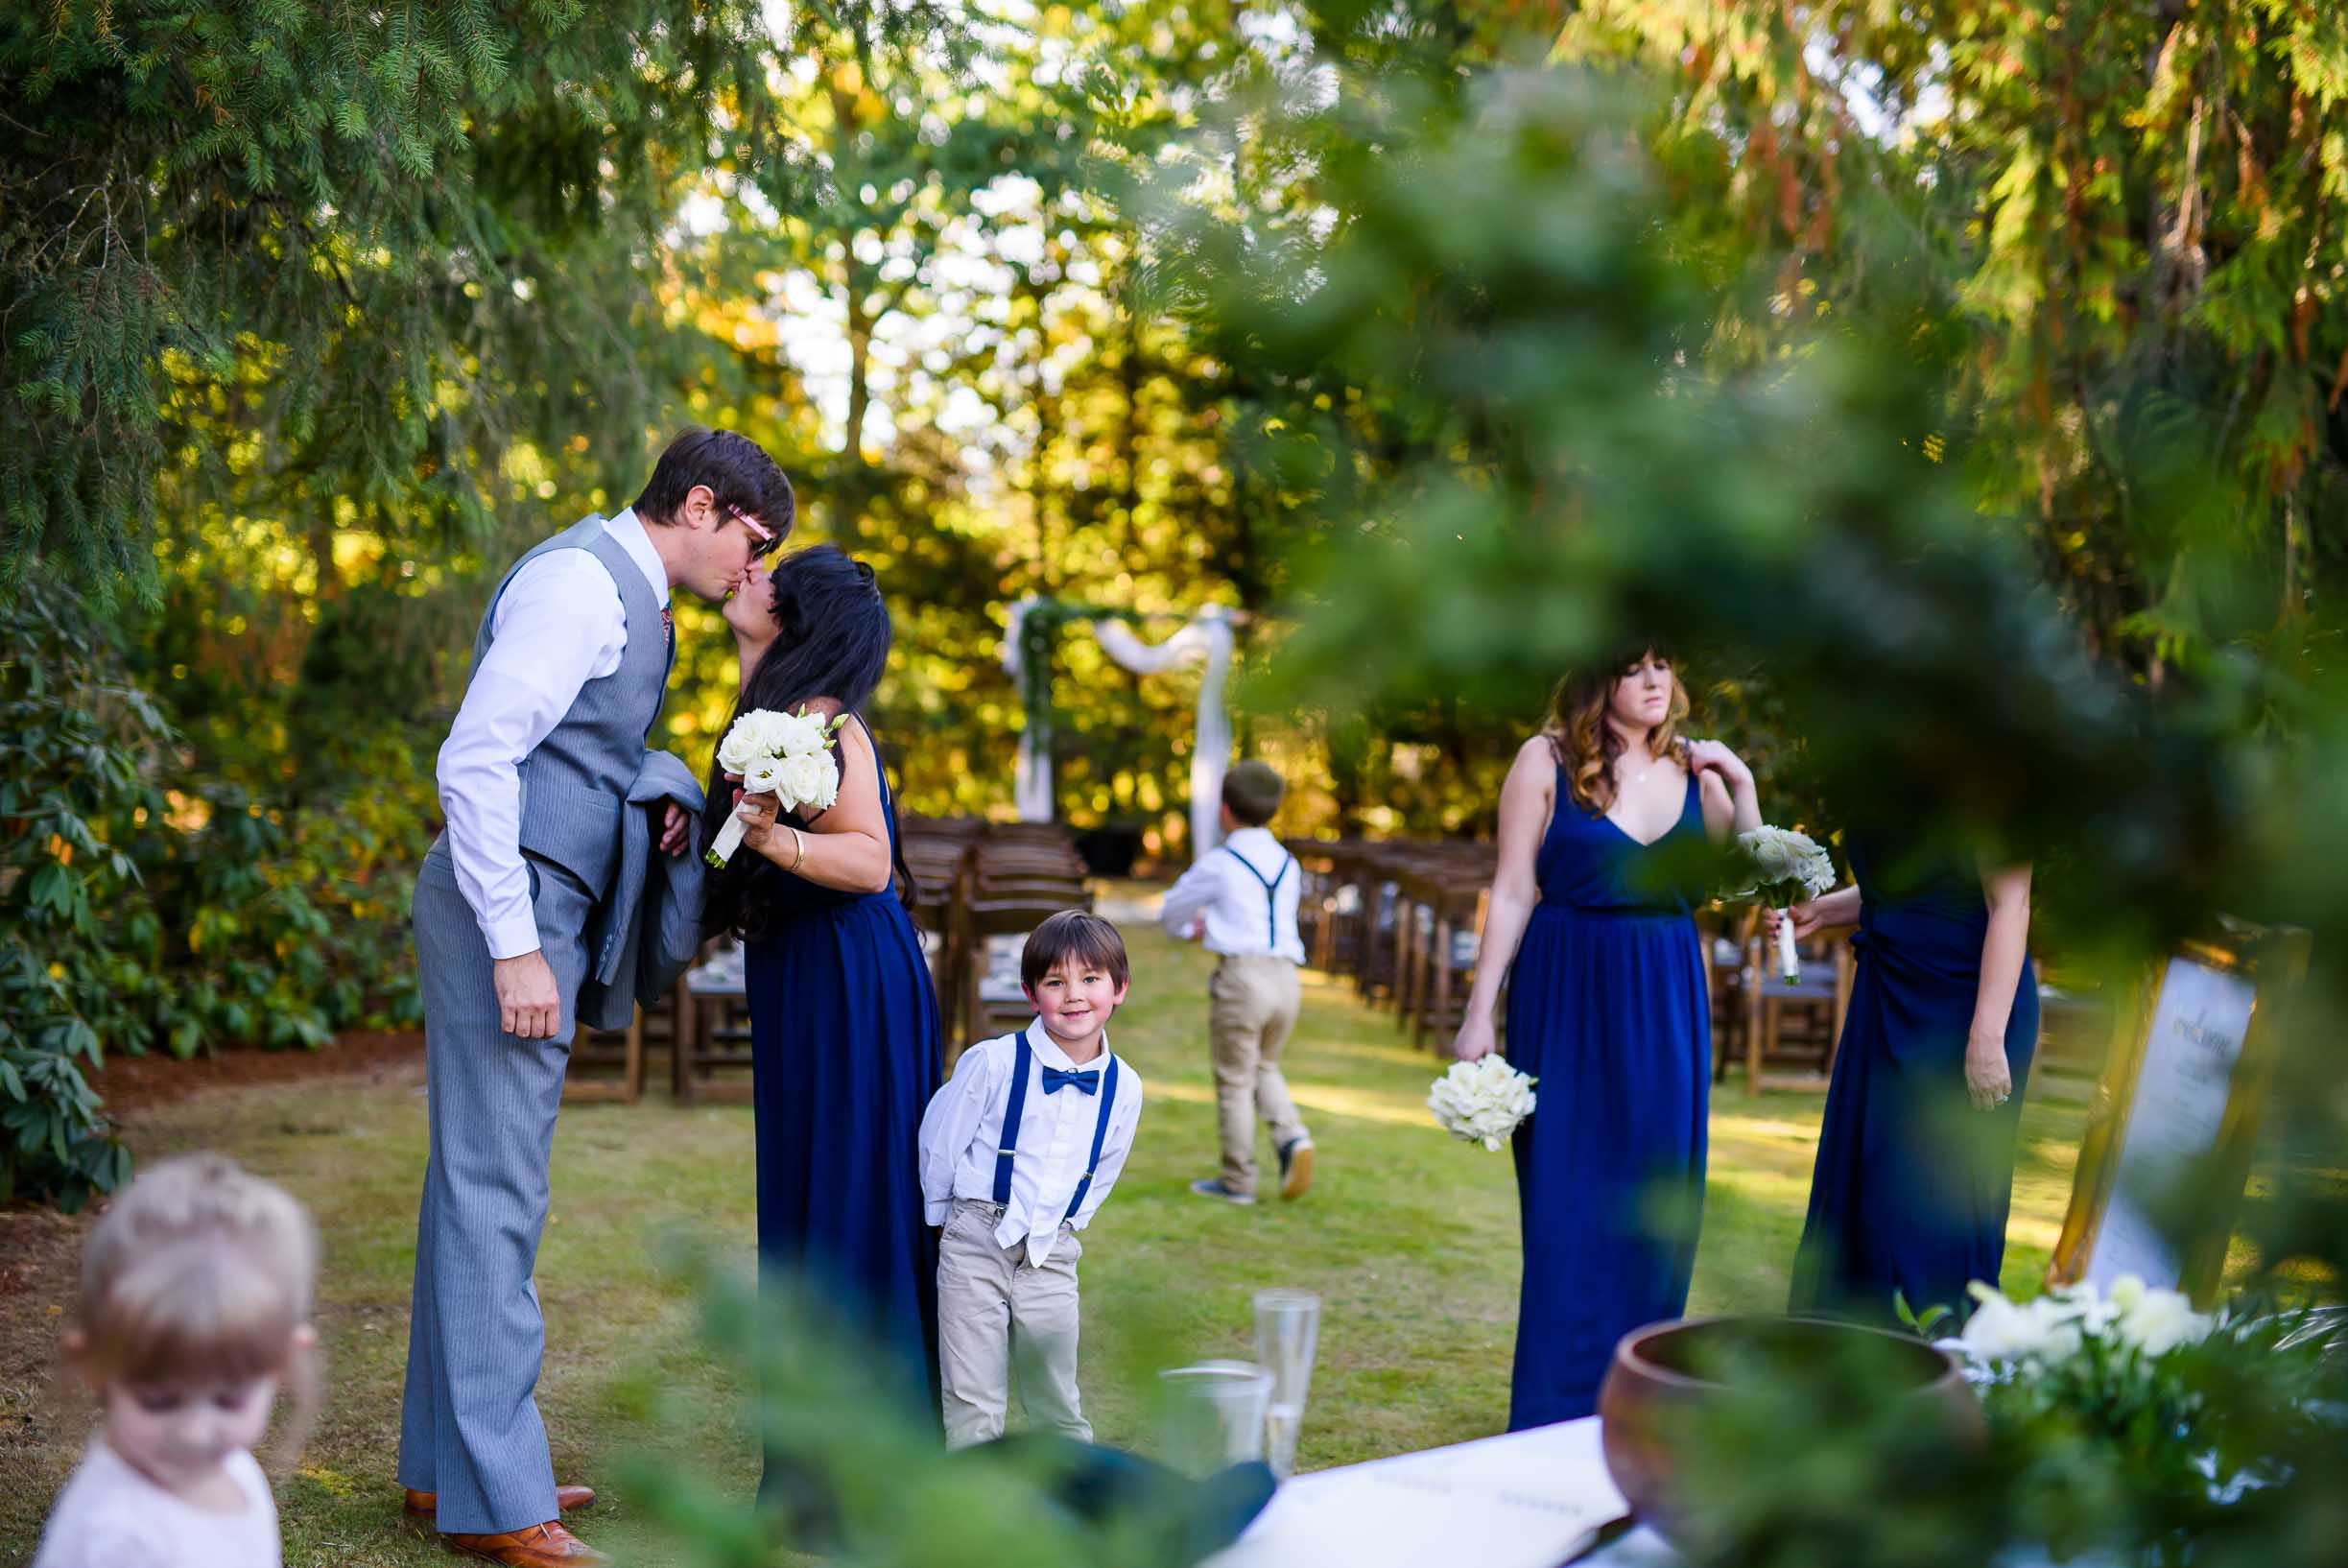 PORTLAND INTAMATE BACKYARD WEDDING 41.jpg